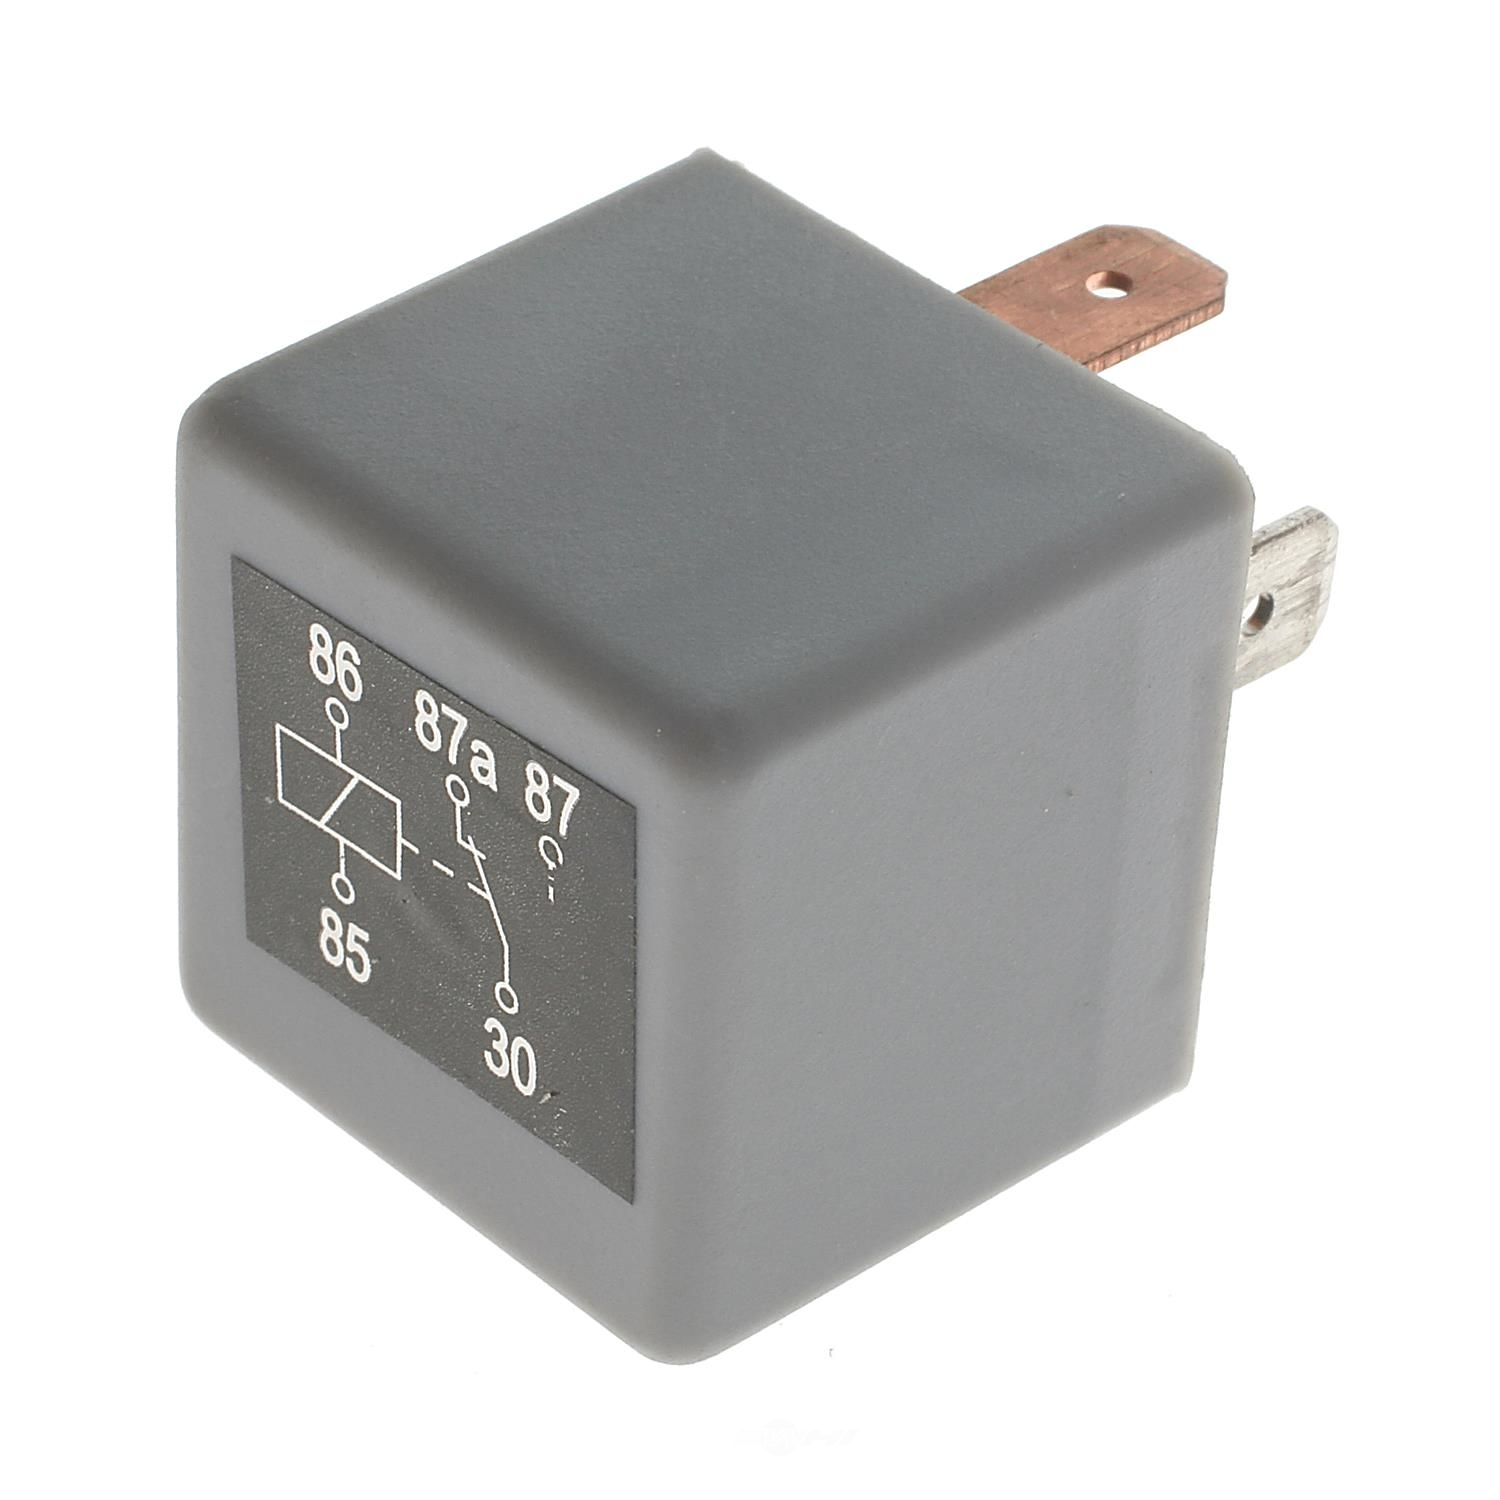 STANDARD T-SERIES - Idle Speed Control Relay - STT RY30T